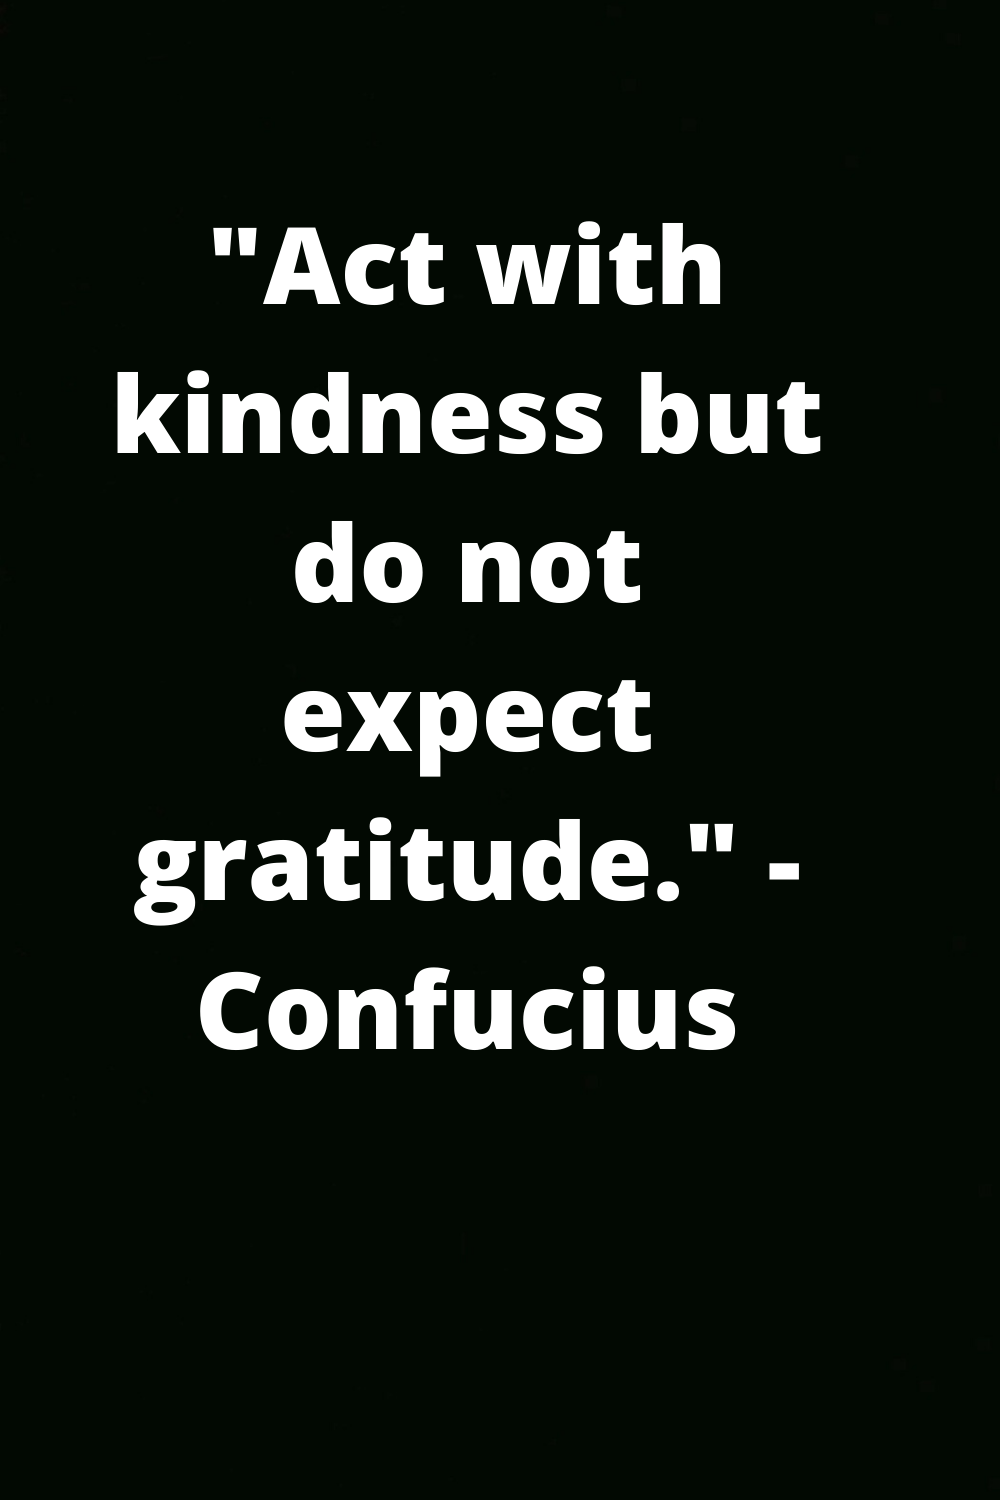 Life quotes by Confucius on Act with kindness but do not expect gratitude